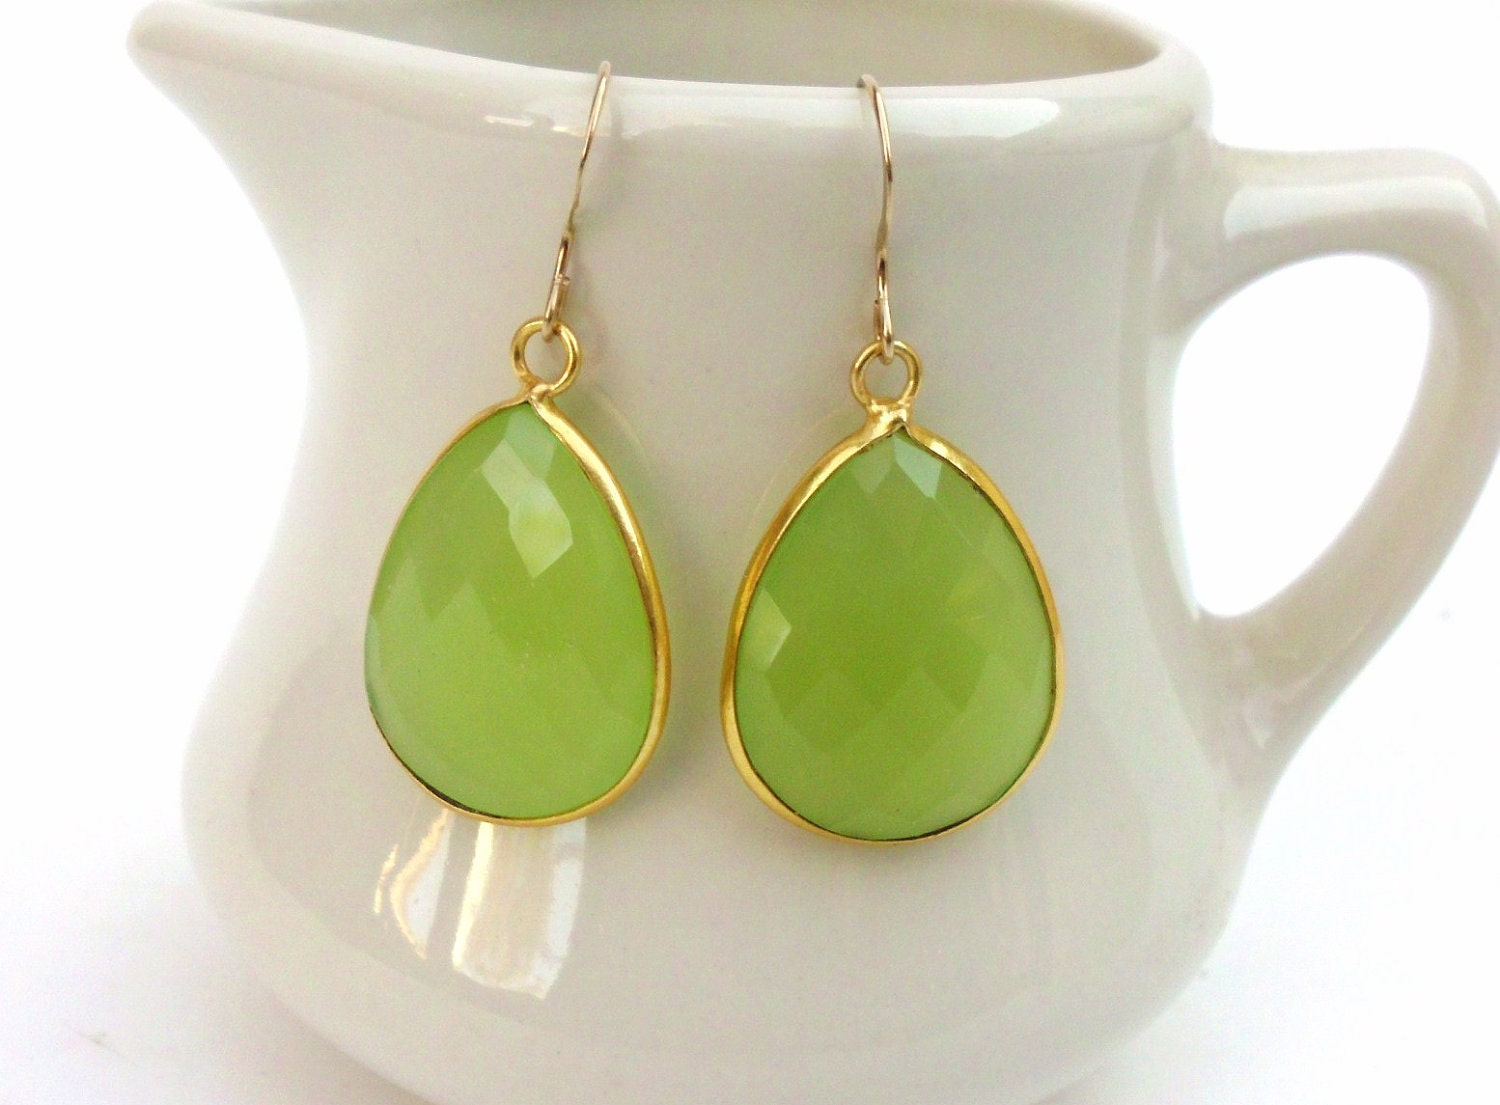 Gorgeous Lime Green Chalcedony and Gold Vermeil Earrings - BeadlieveJewelry